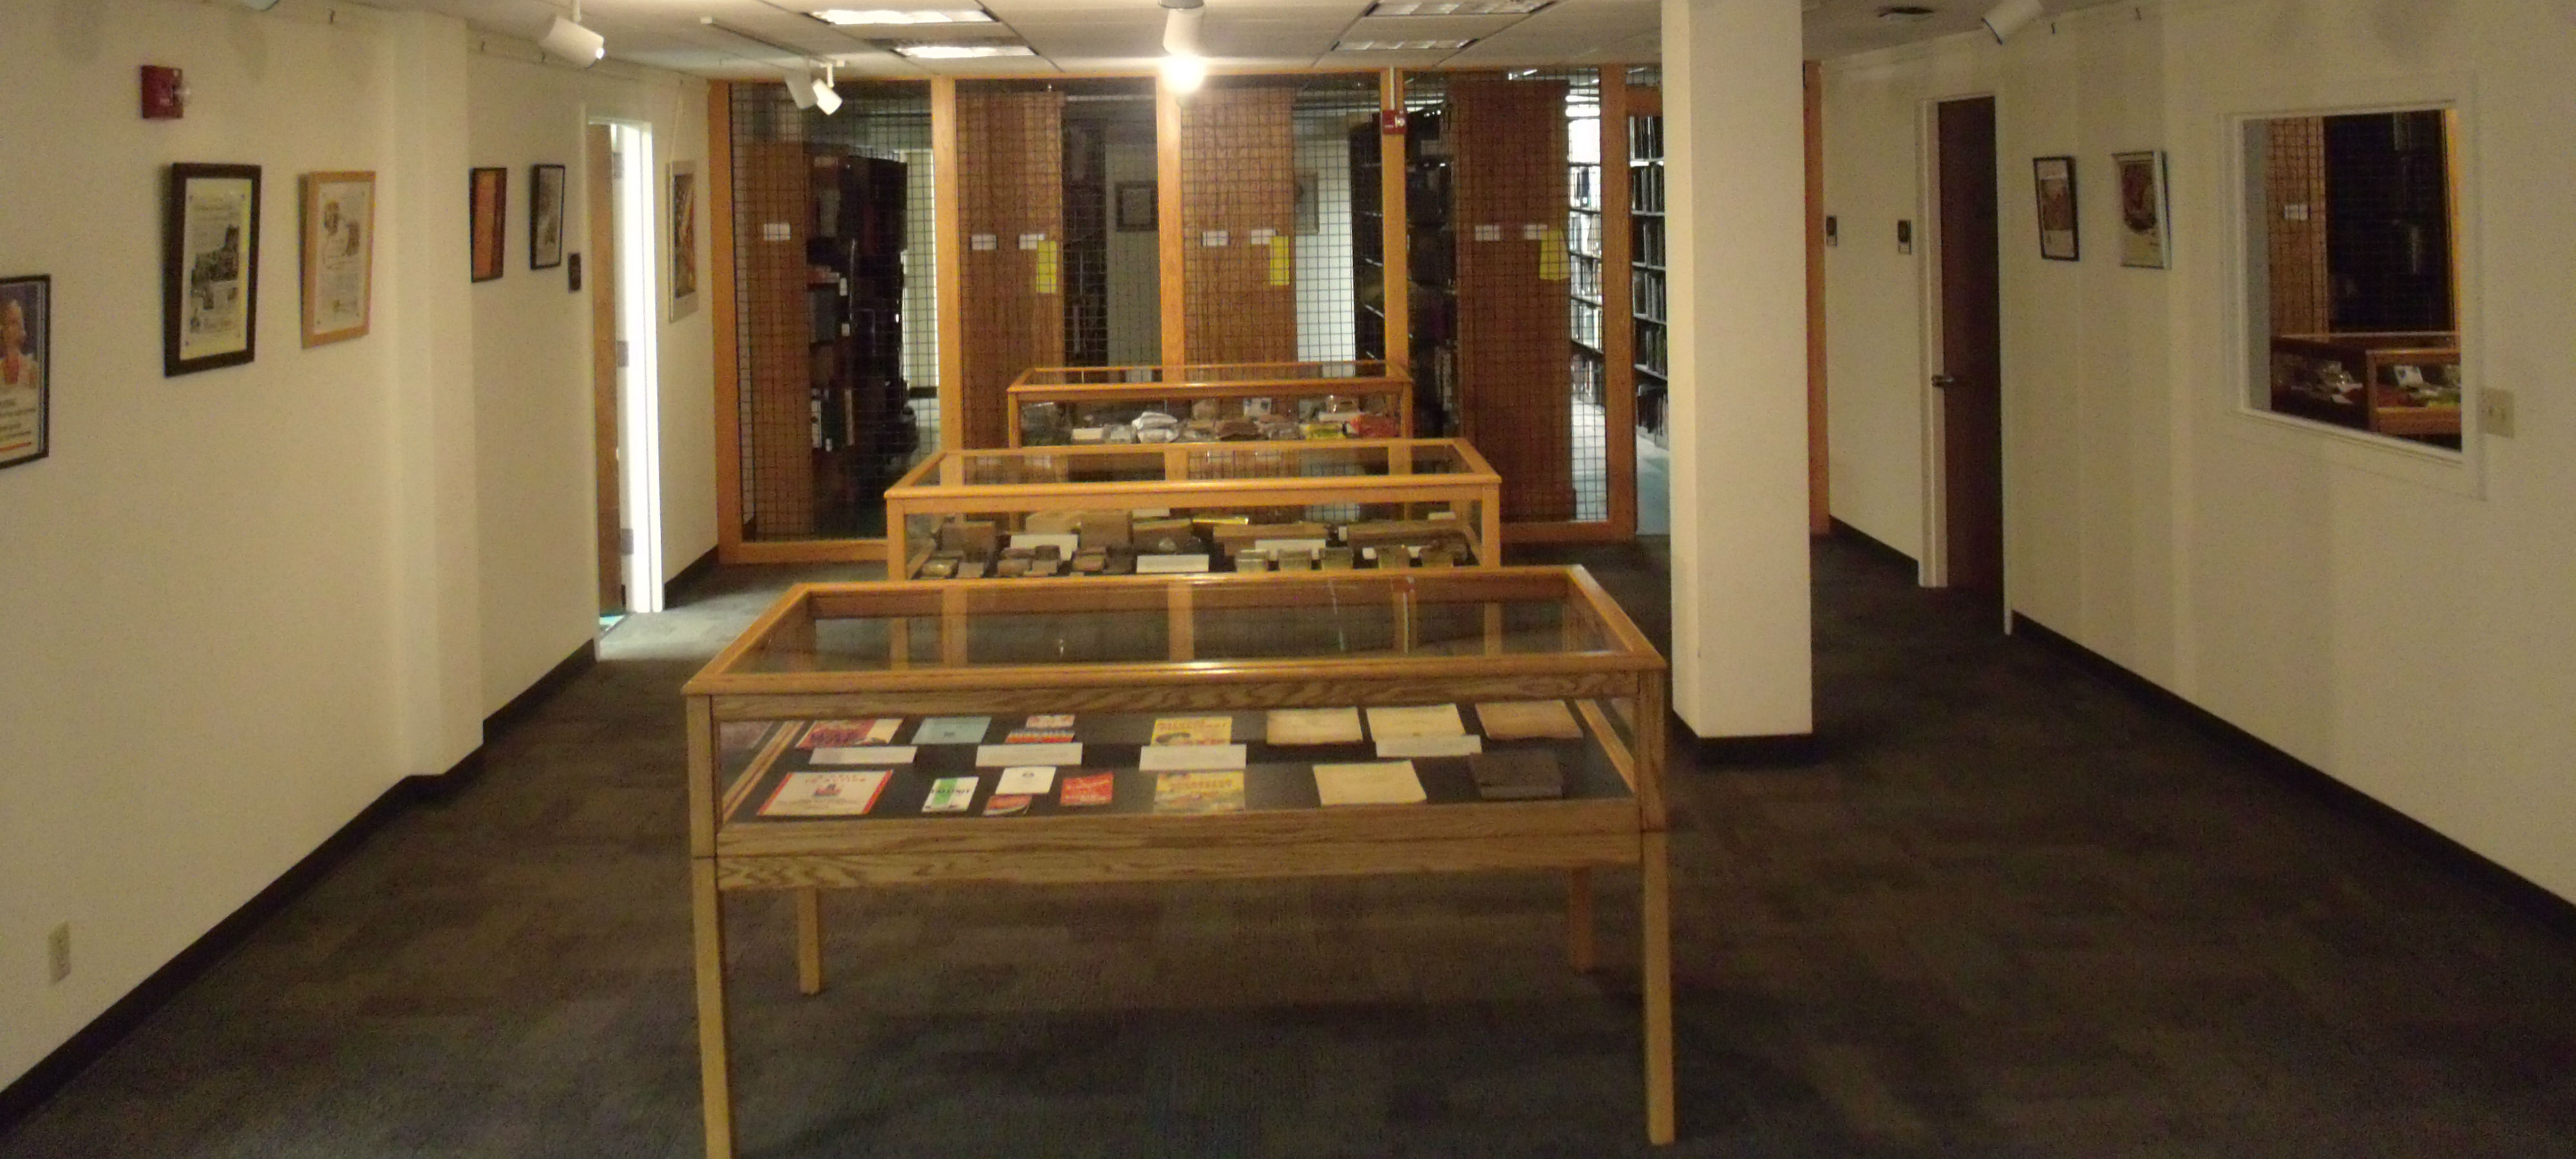 MSU Library Display